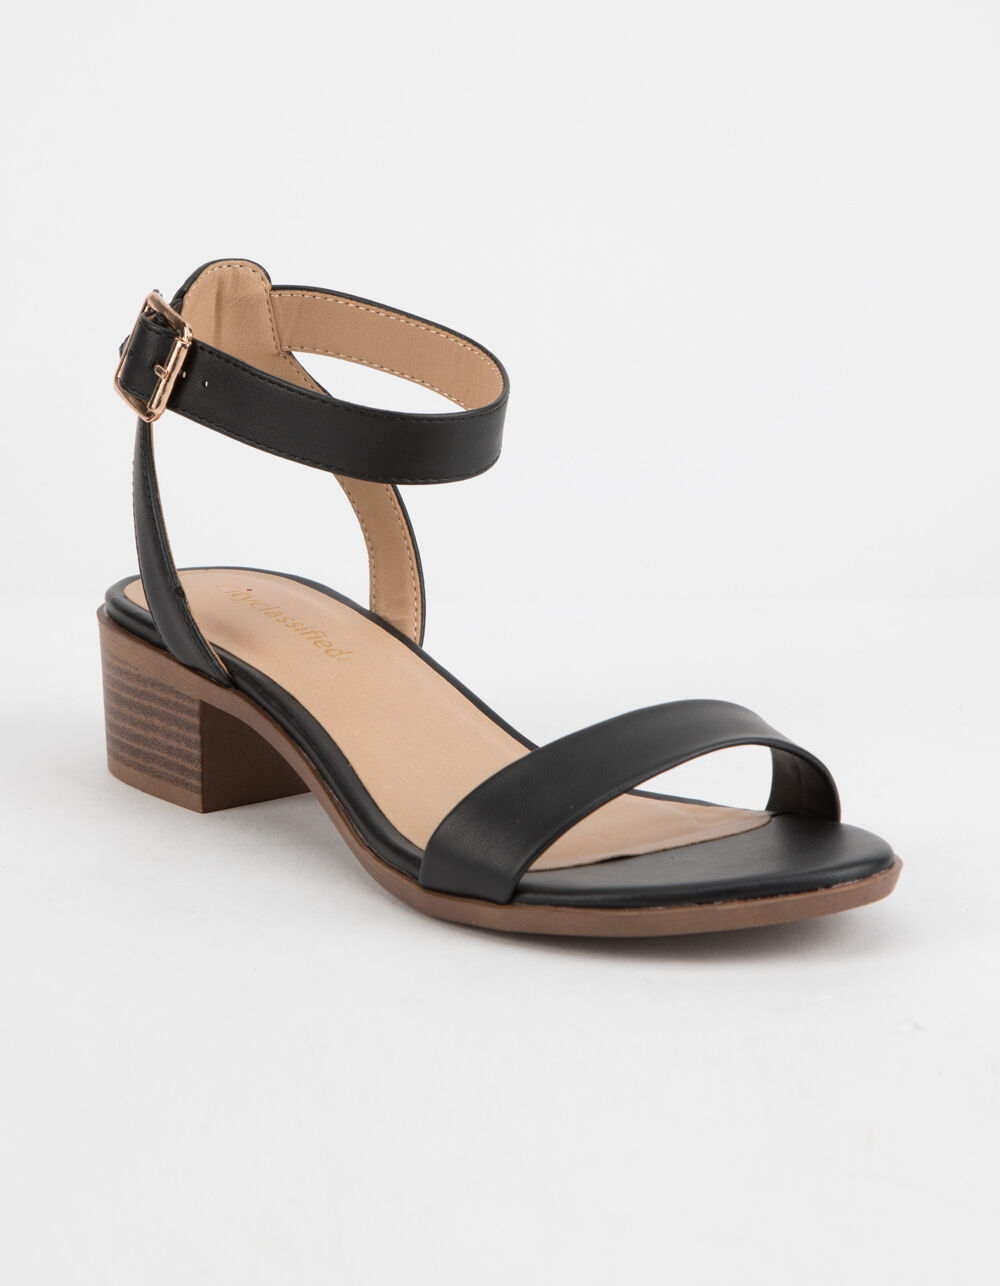 CITY CLASSIFIED Ankle Strap Black Heeled Sandals